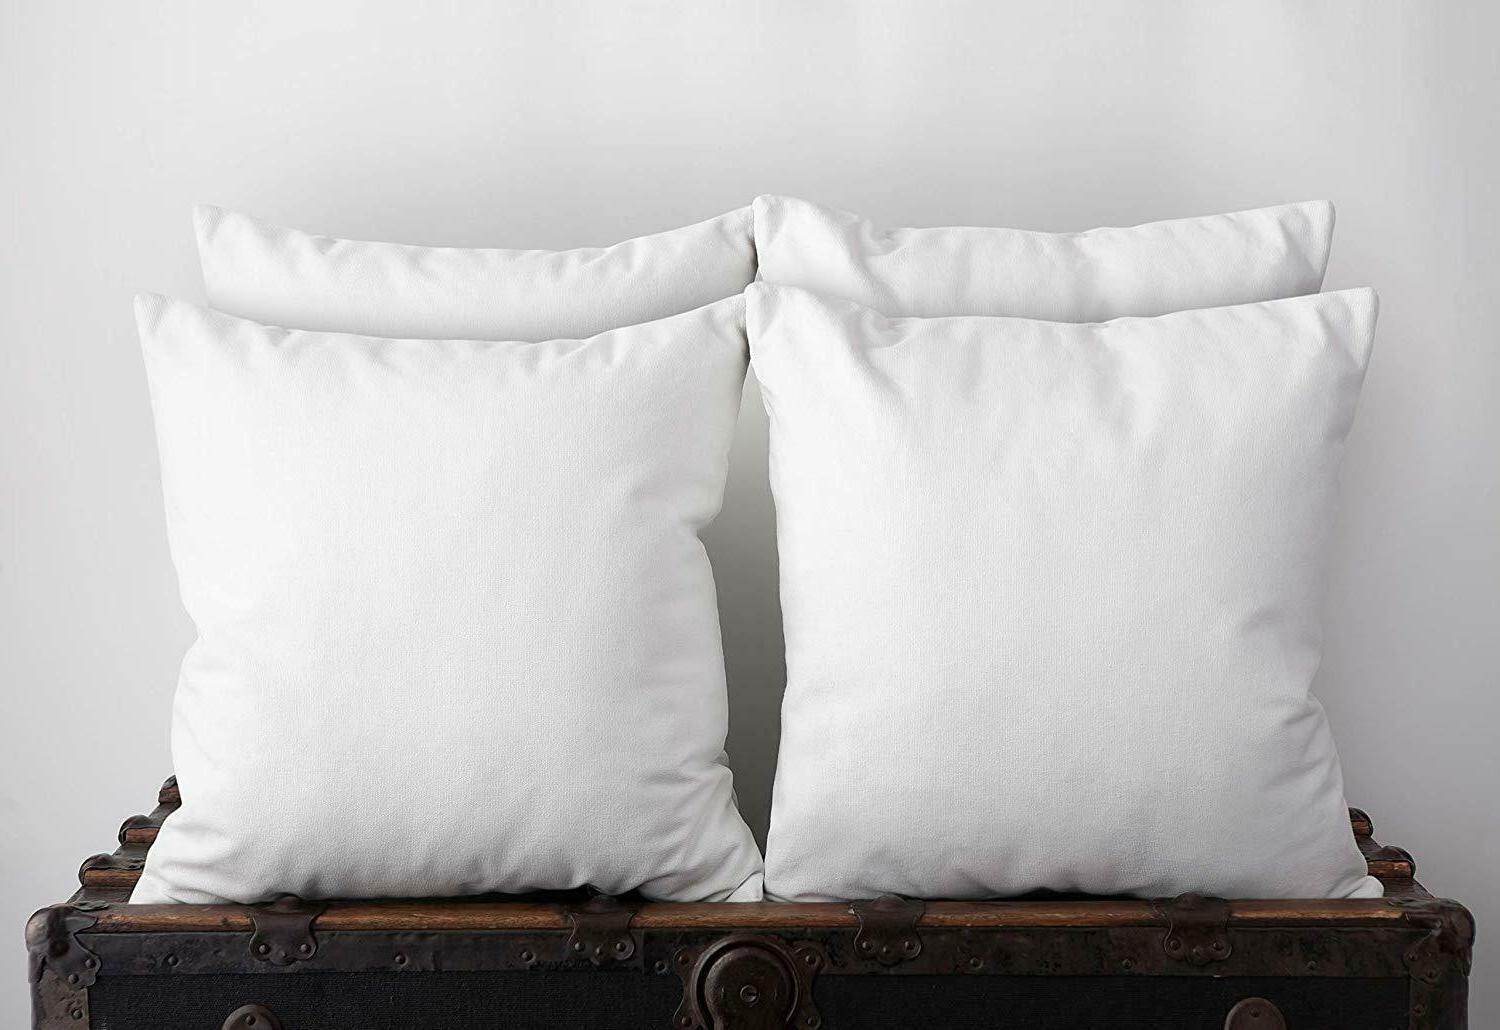 Pack of Pillows Insert Couch Utopia Bedding